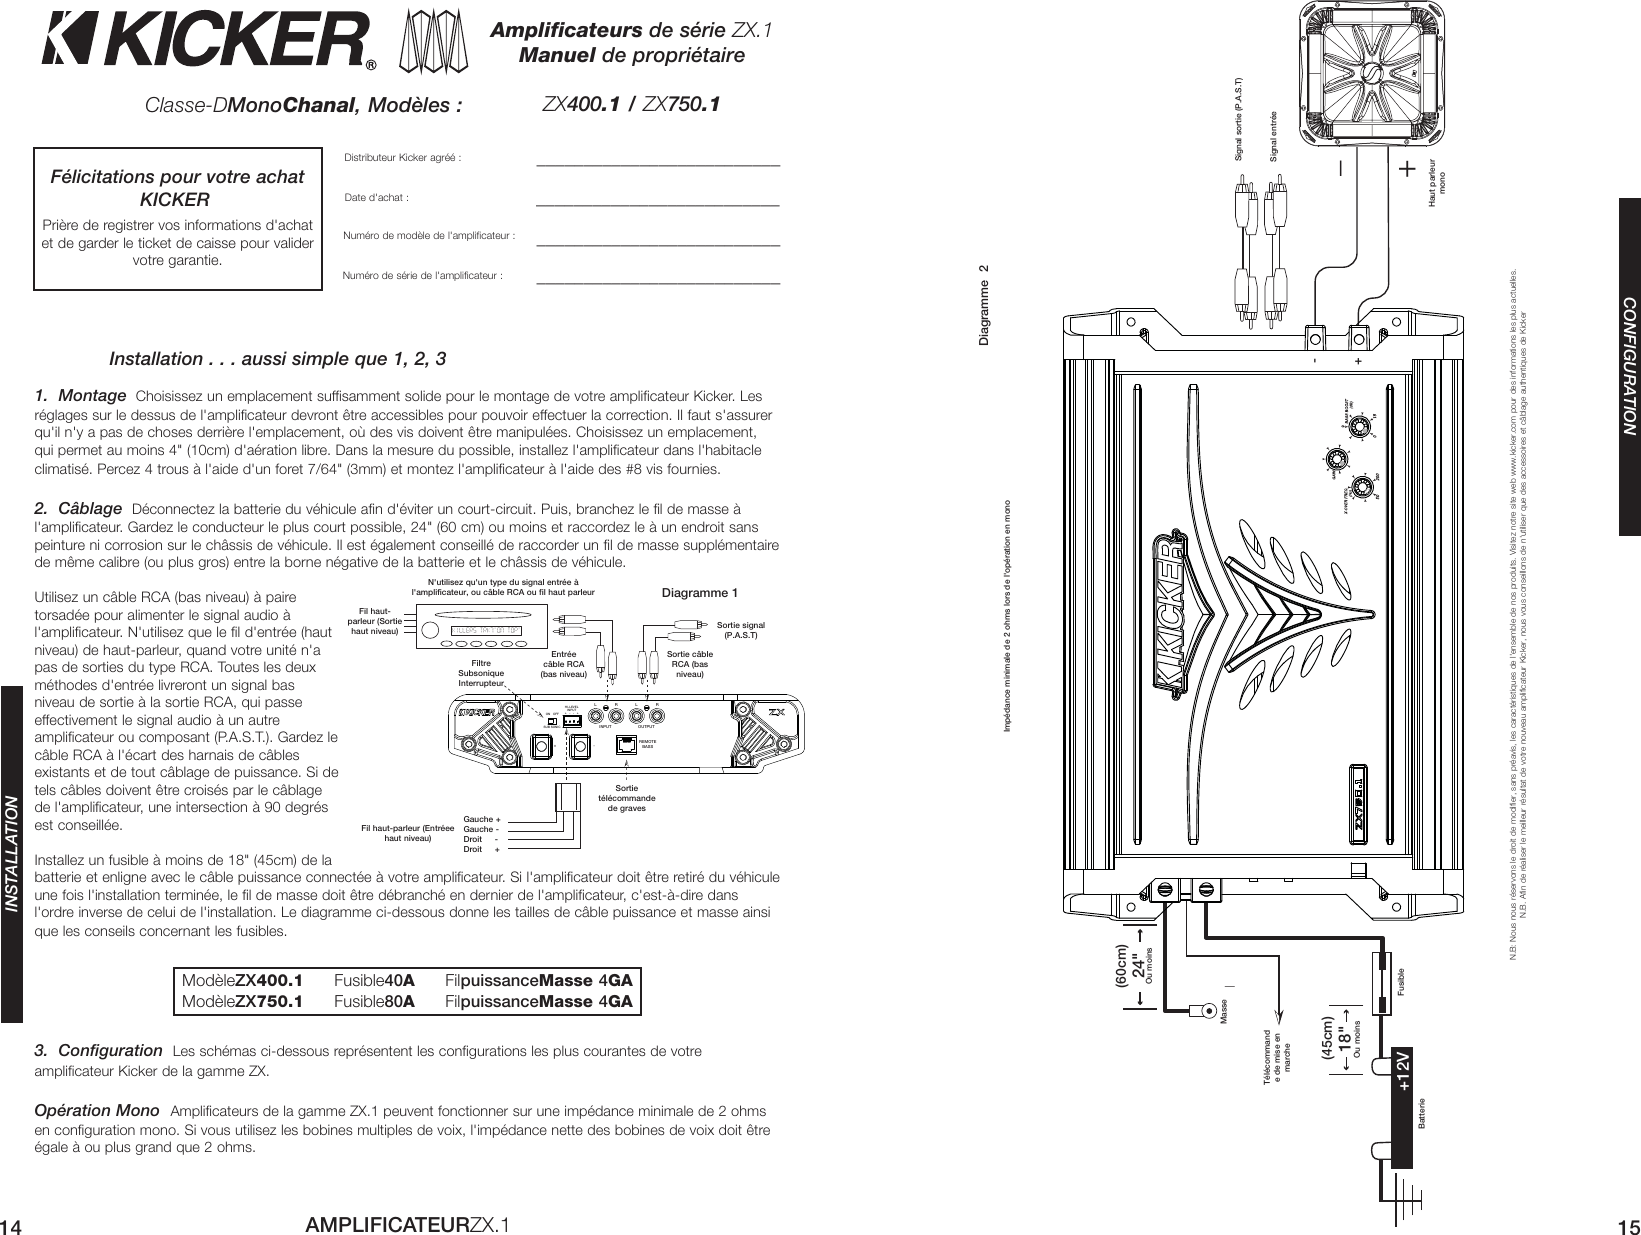 hight resolution of kicker zx750 1 wiring diagram wiring diagram data val kicker cx1200 1 wiring diagram